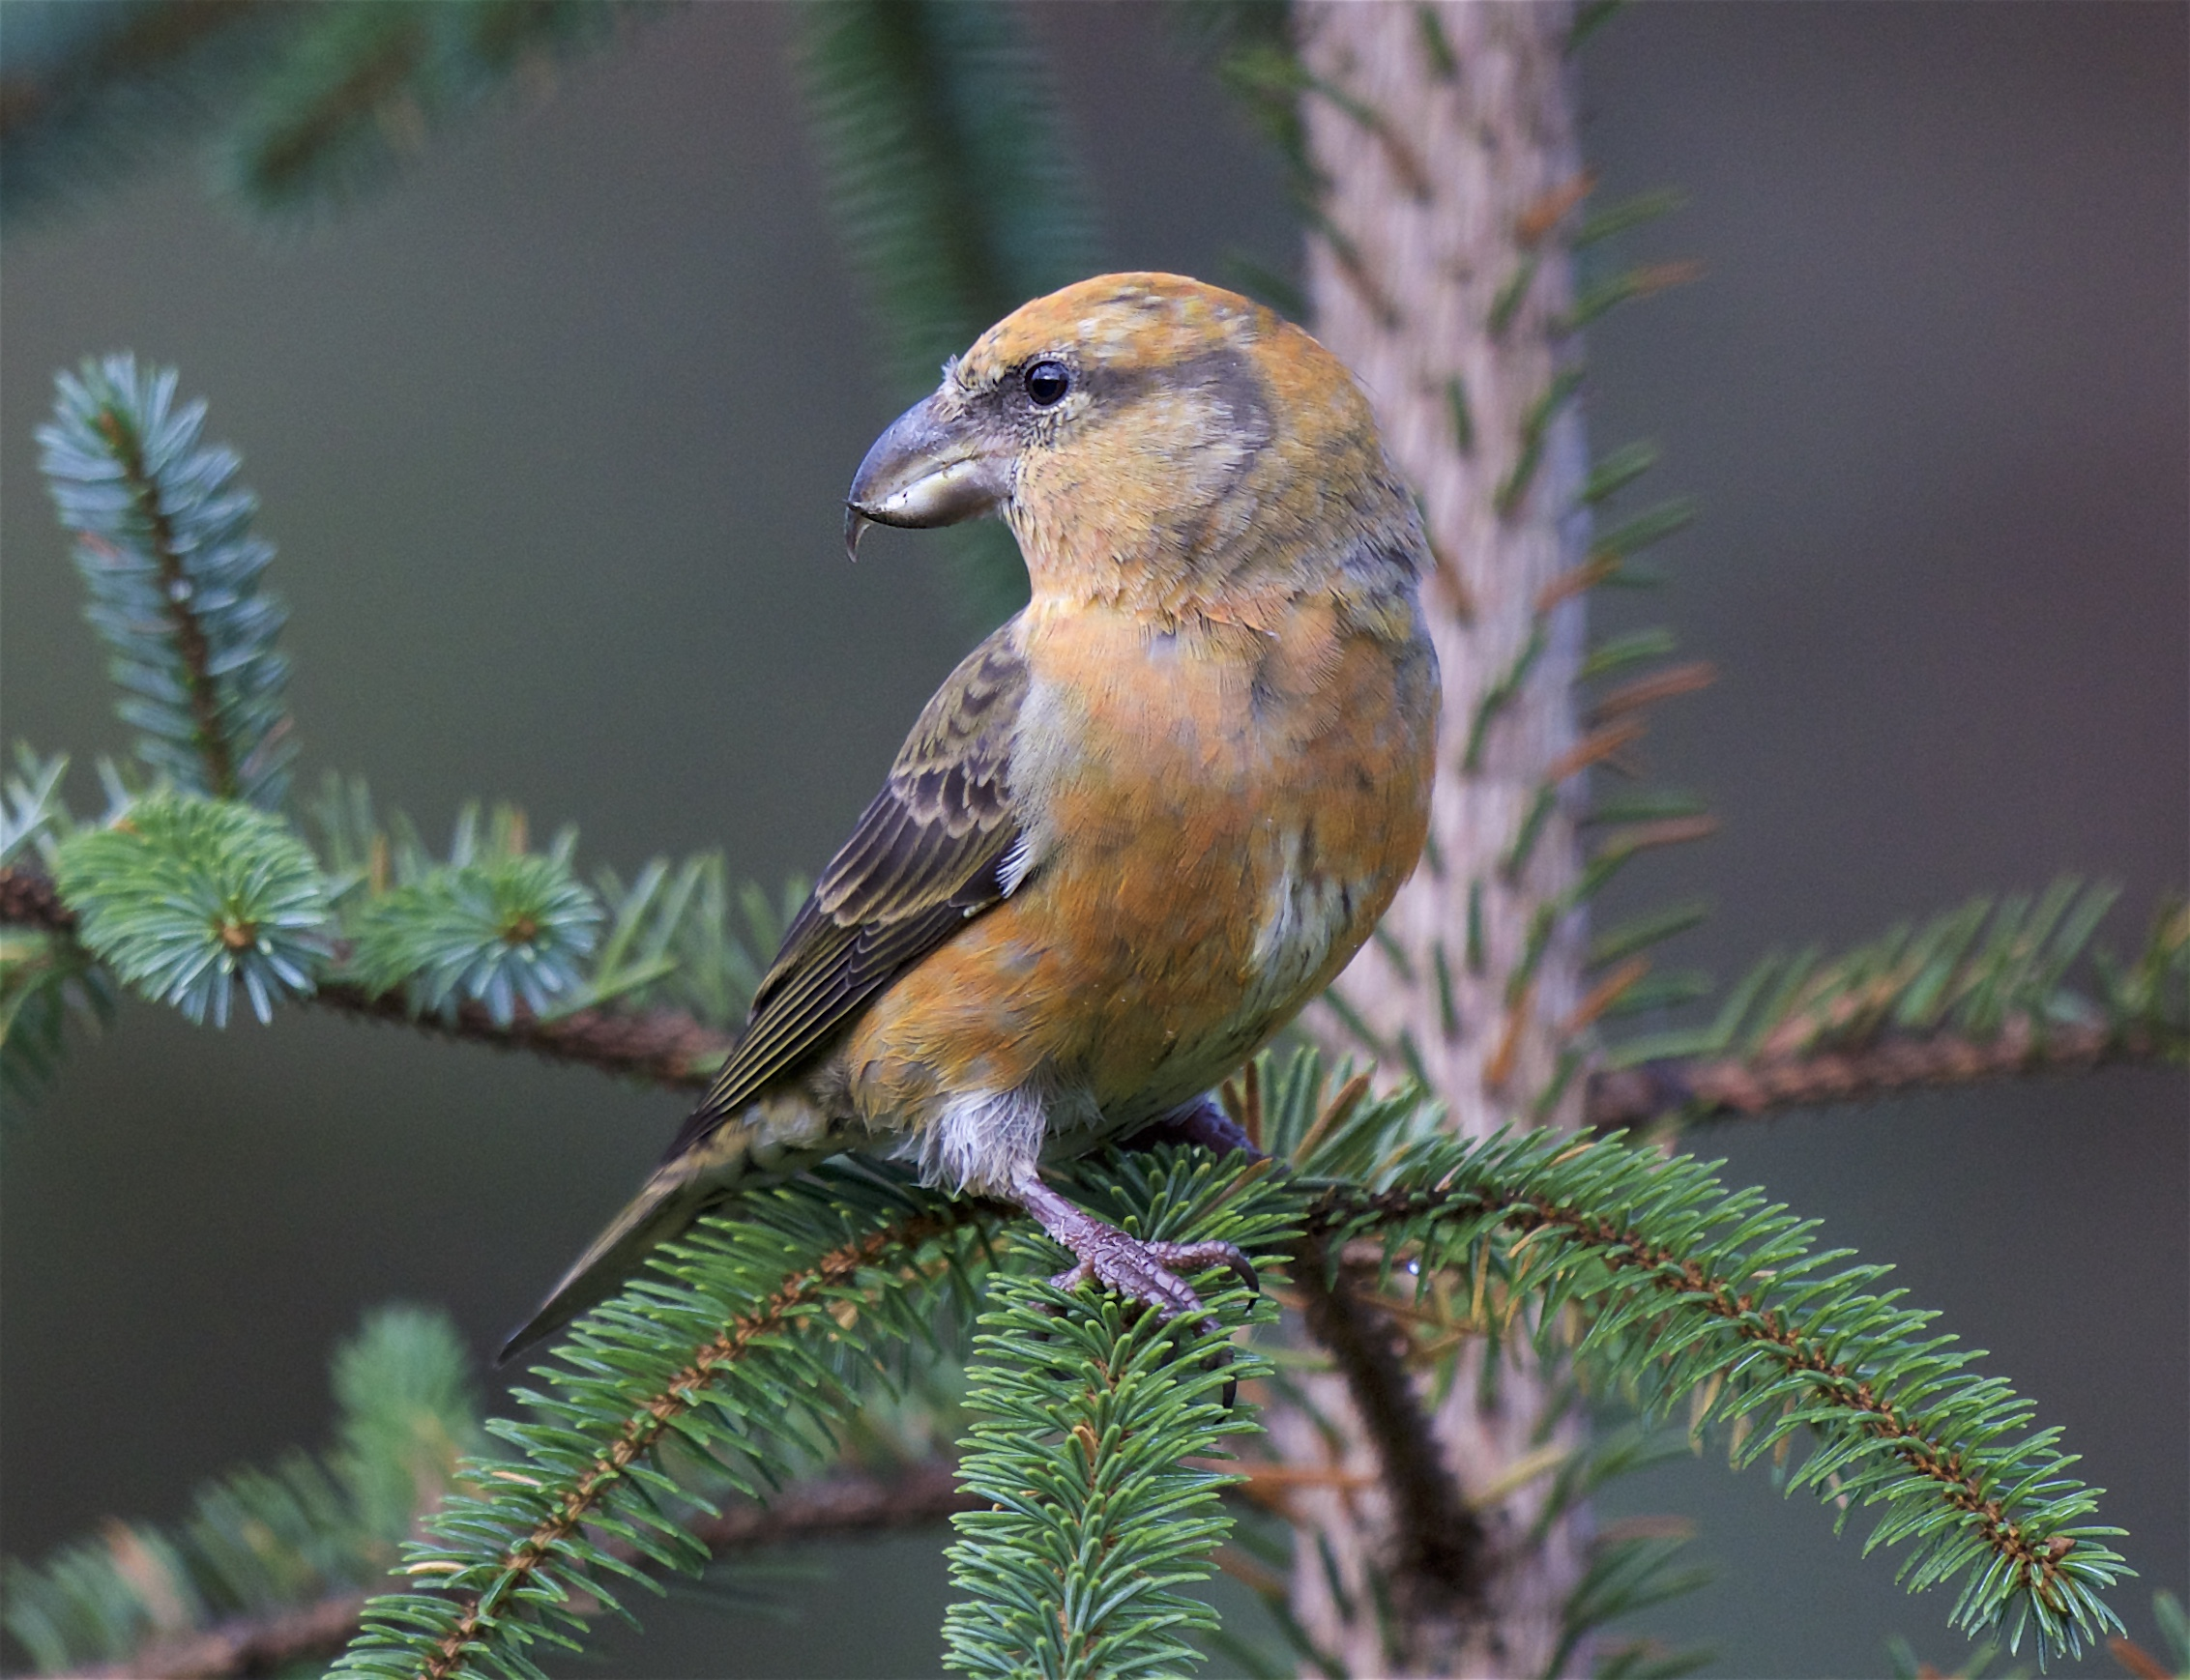 Common Crossbill 30 Oct 2017 (Peter Christian)